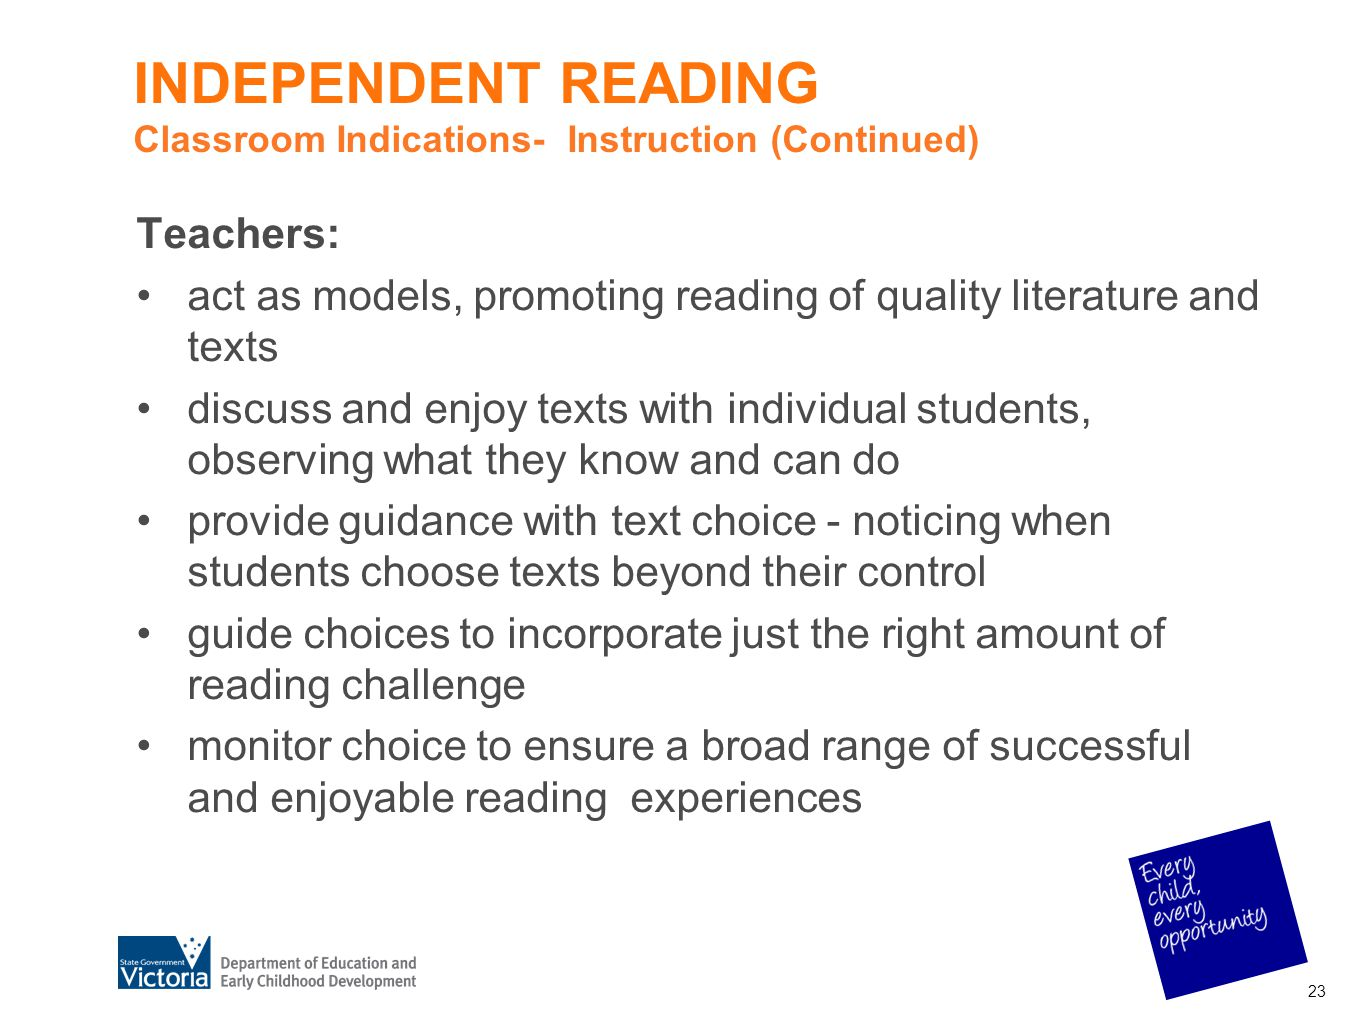 INDEPENDENT READING Classroom Indications- Instruction (Continued)